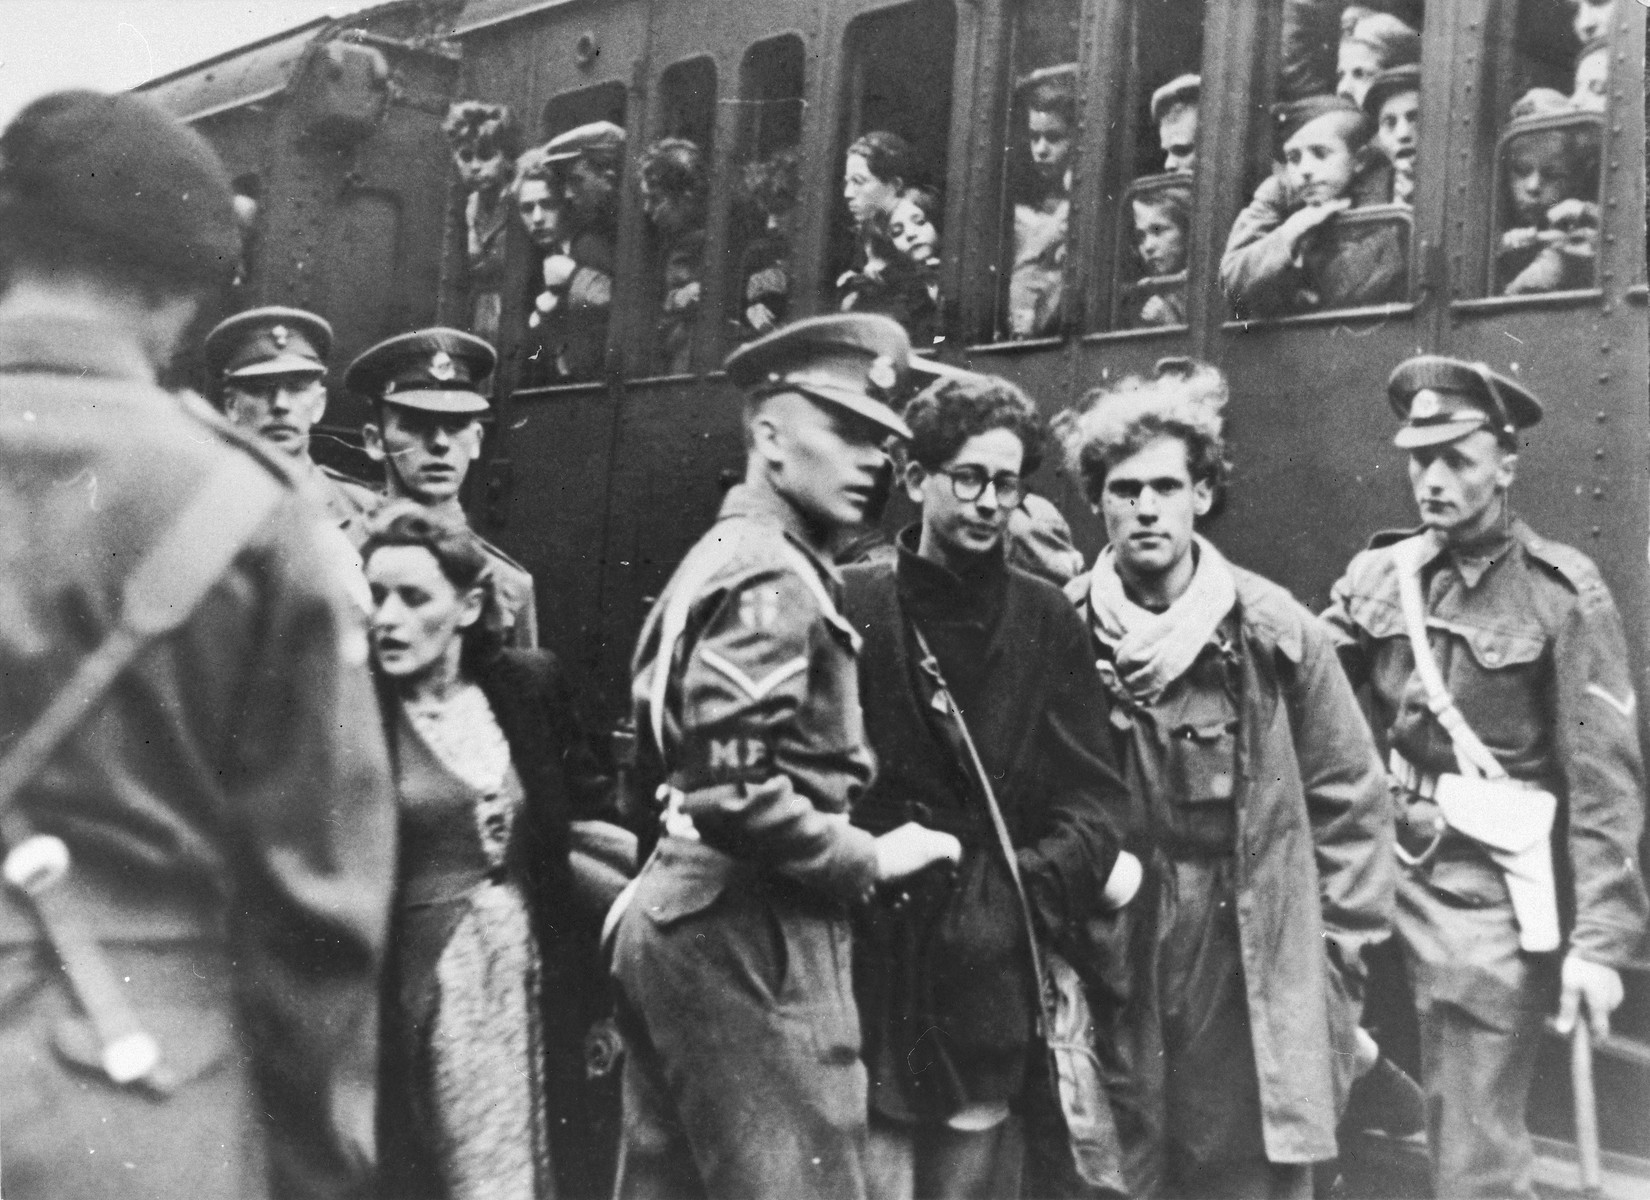 British police escort two former passengers of the Exodus 1947 who were brought back to Europe, at the train station in Hamburg.  Pictured are Benno Ginsburg (right) and Jacques Rabinovich (left, wearing glasses).